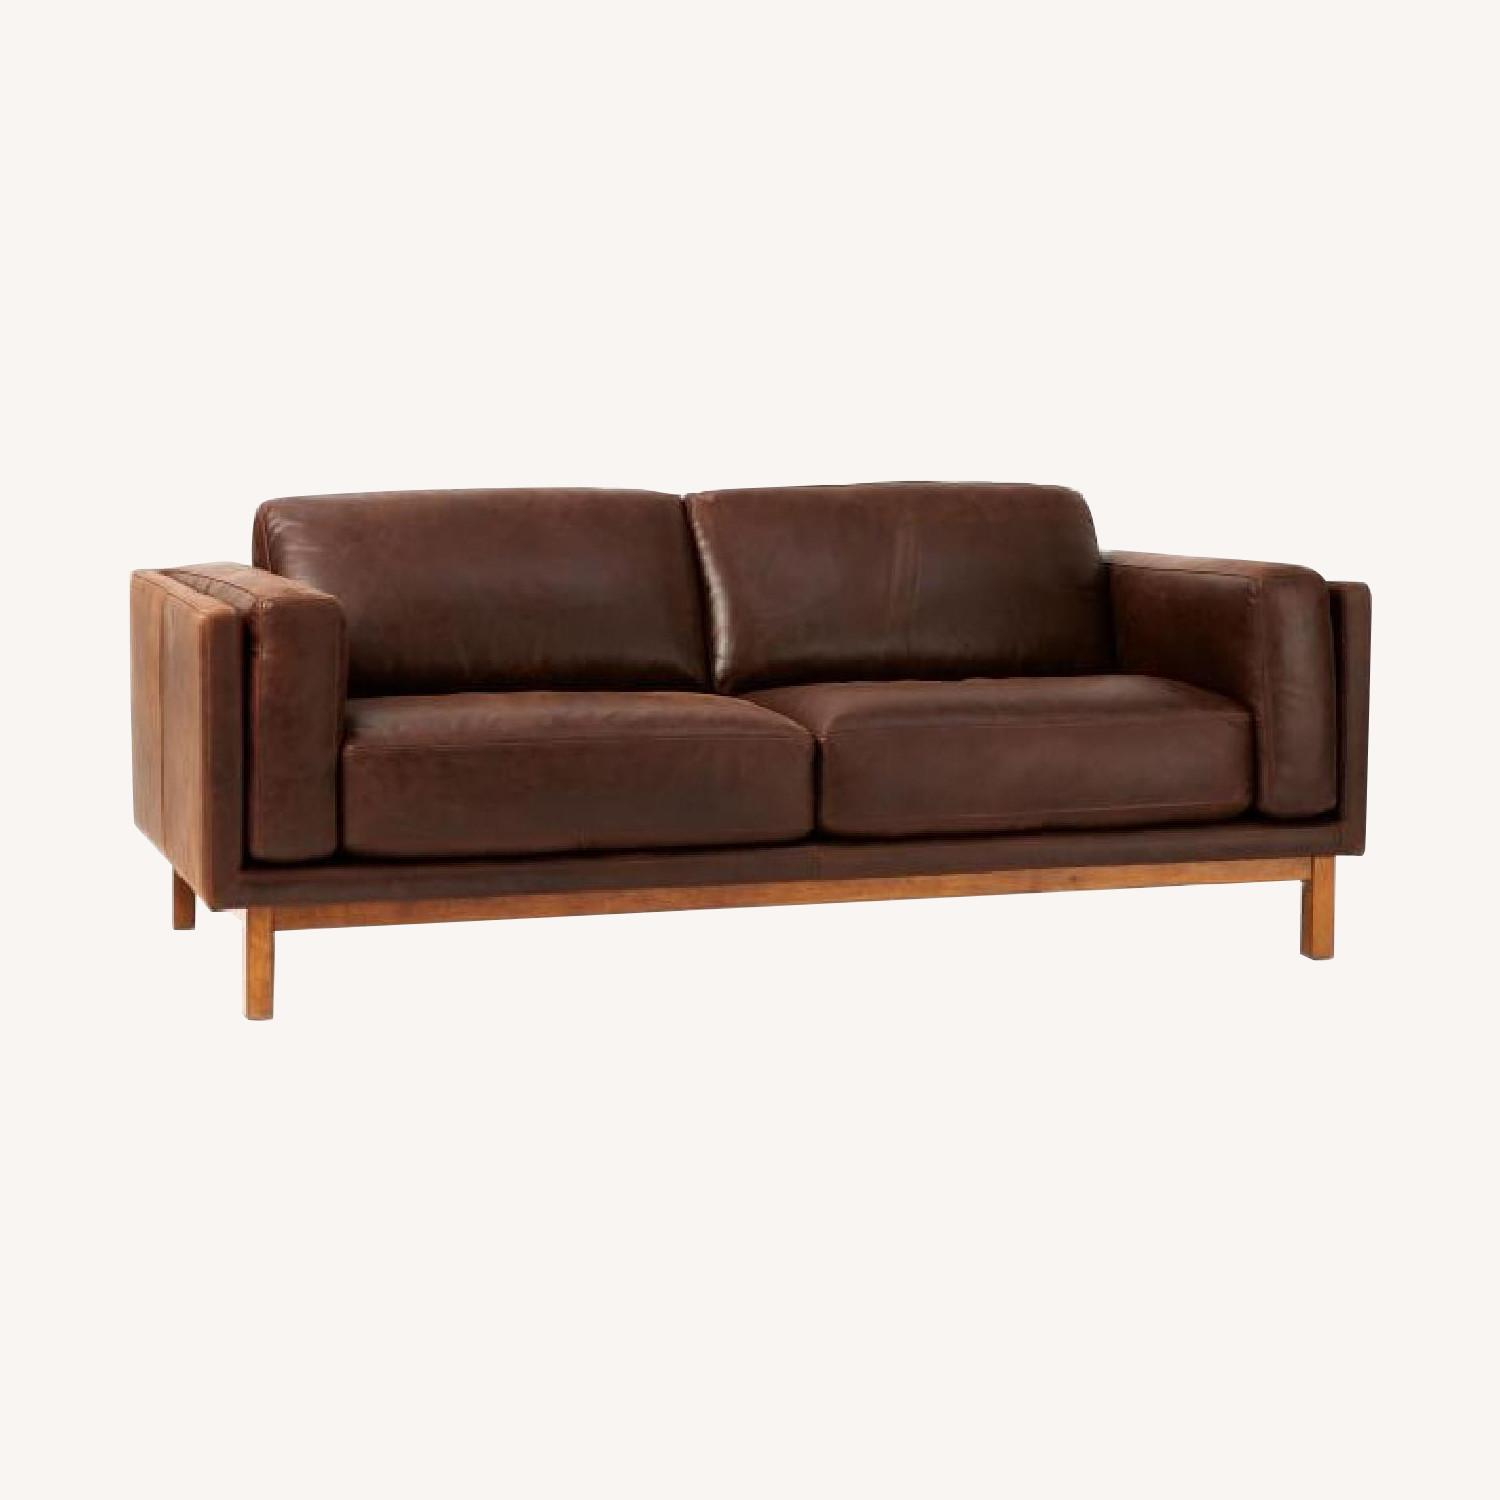 West Elm Weston Leather Sofa in Molasses